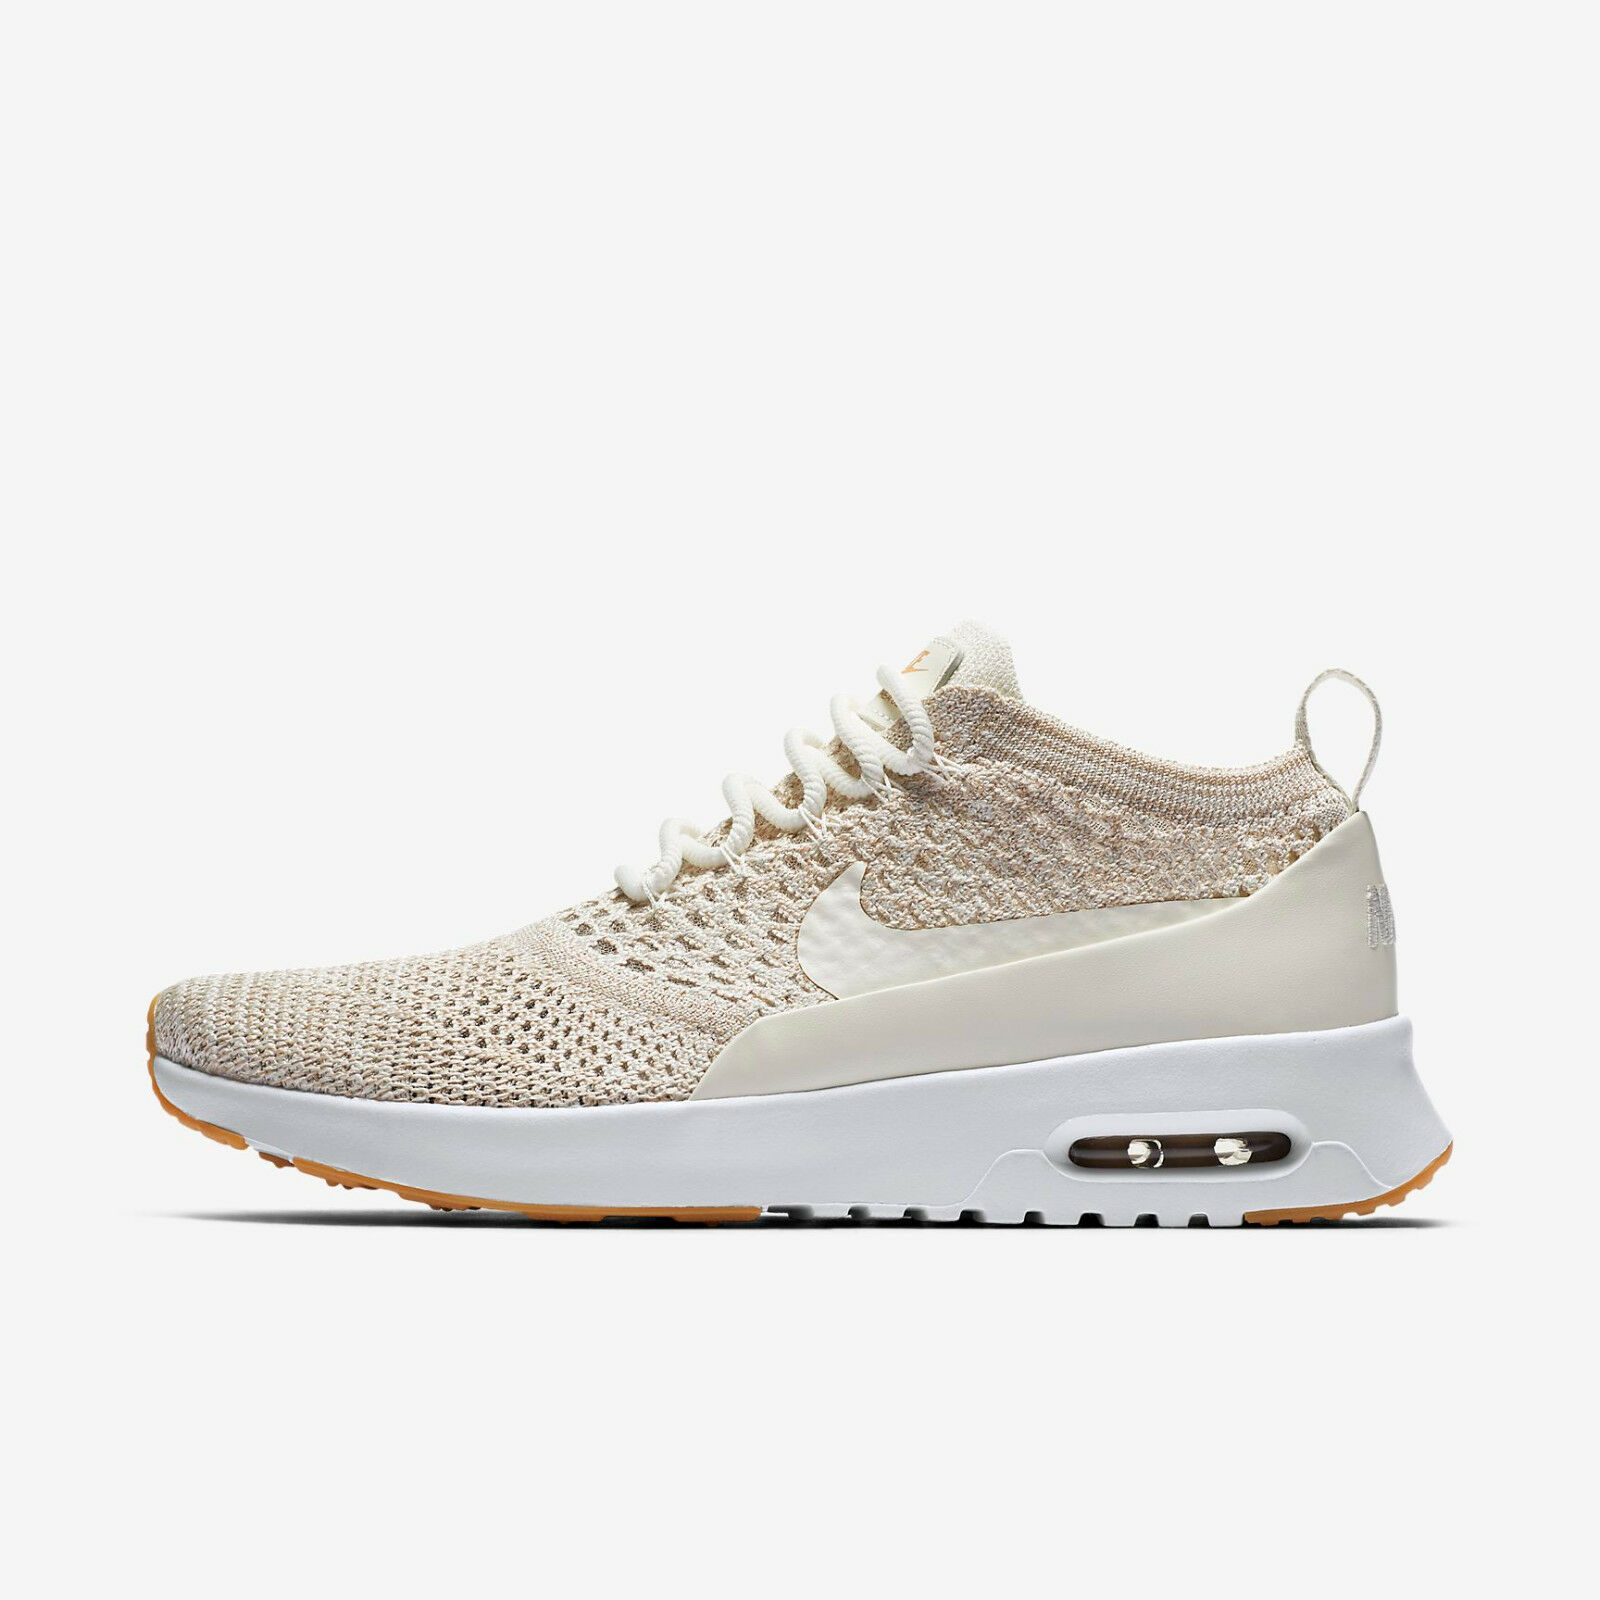 best service e48fd 910fe ... coupon for nike mujeres air max thea ultra zapatos flyknit zapatos  ultra vela blanco 881175 102